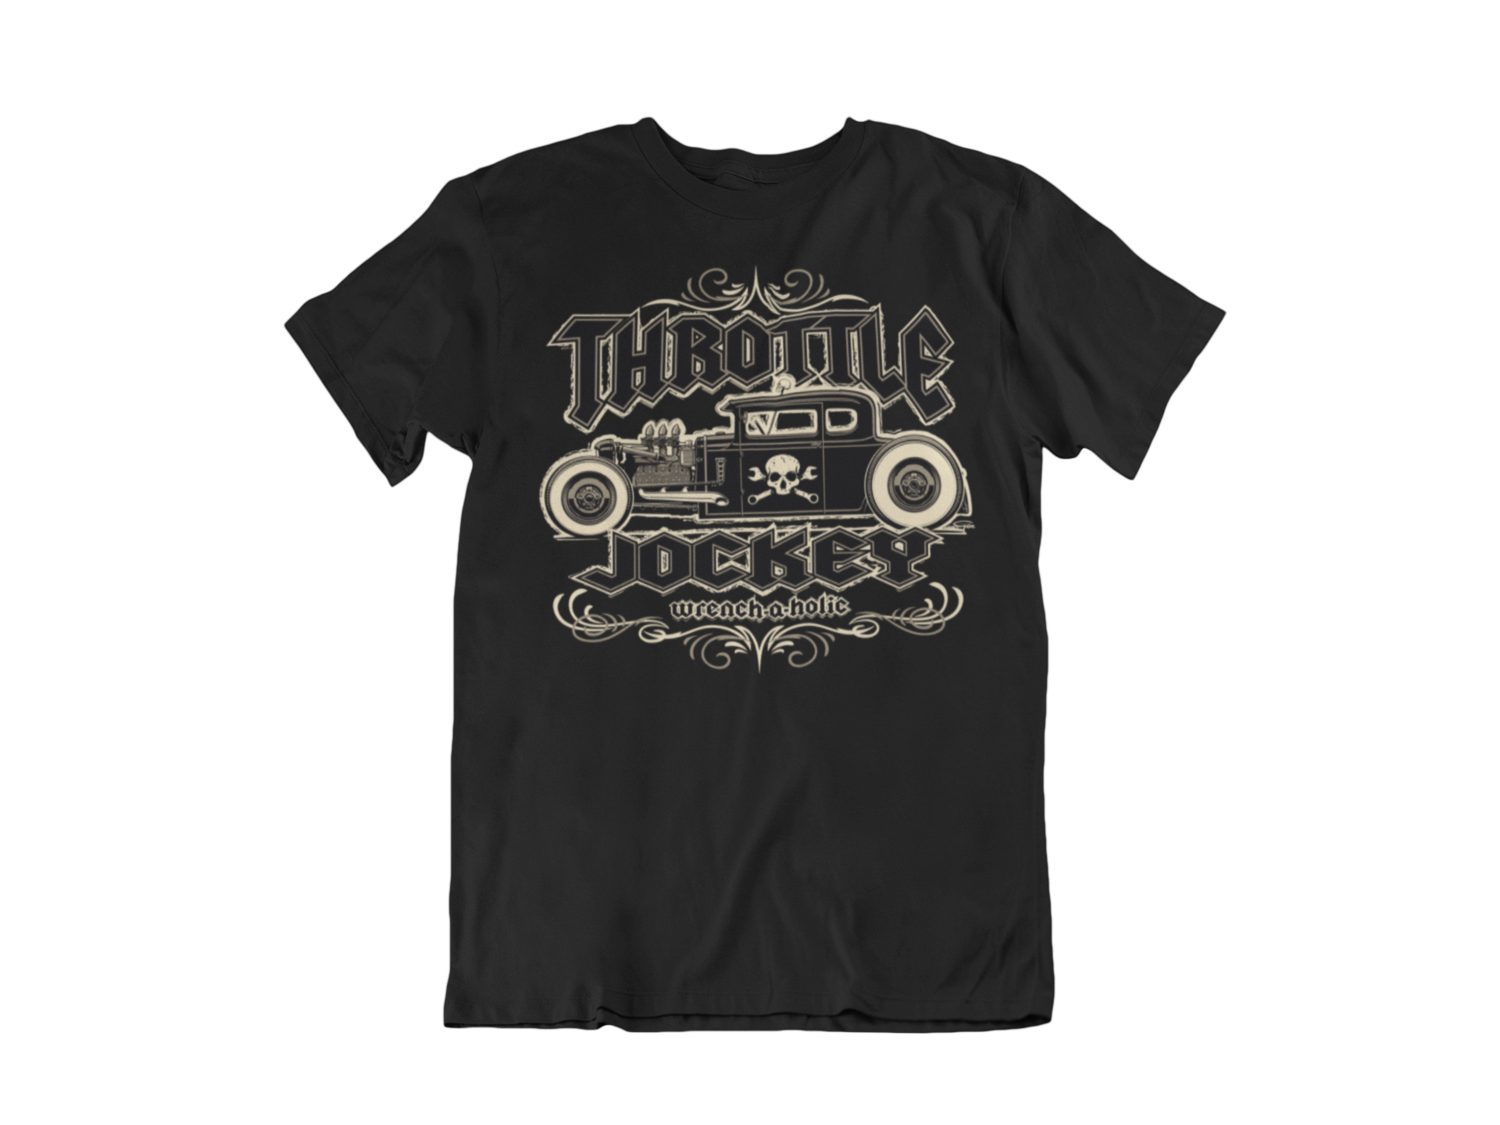 """THROTTLE JOCKEY """"Wrench a Holic"""" T-SHIRT MAN BY Ger """"Dutch Courage"""" Peters artwork"""